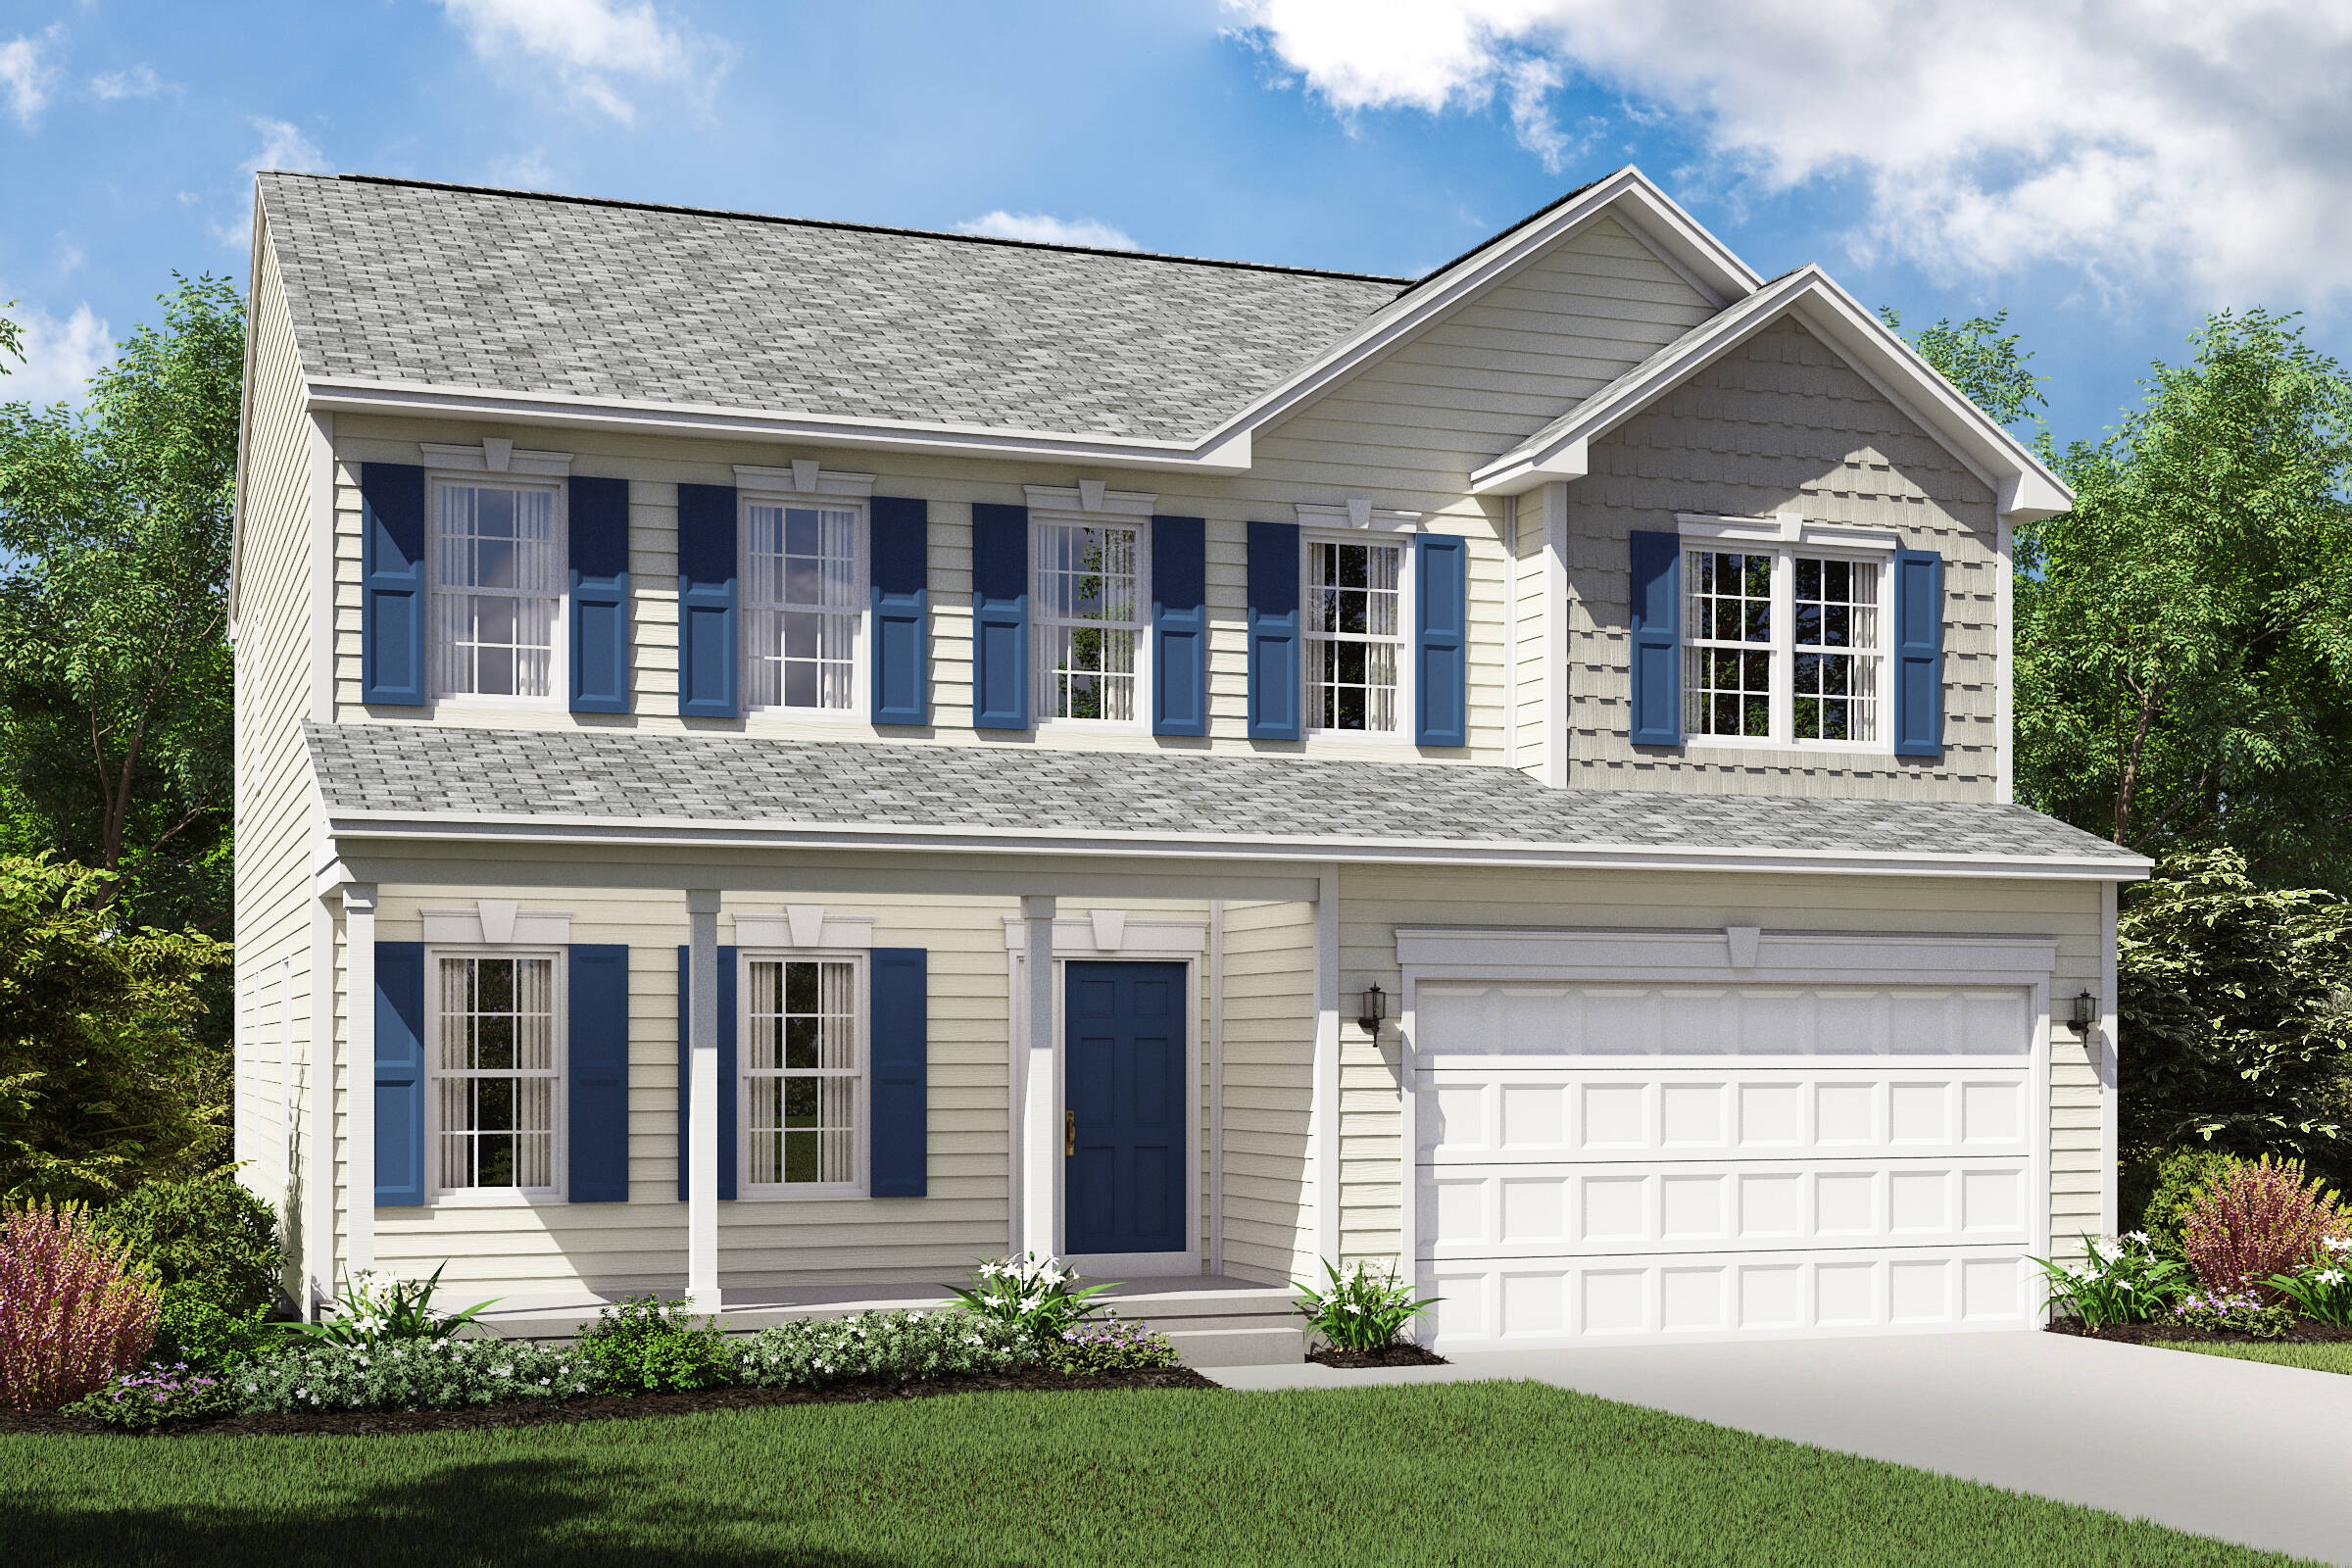 brantwood cs new cleveland area homes